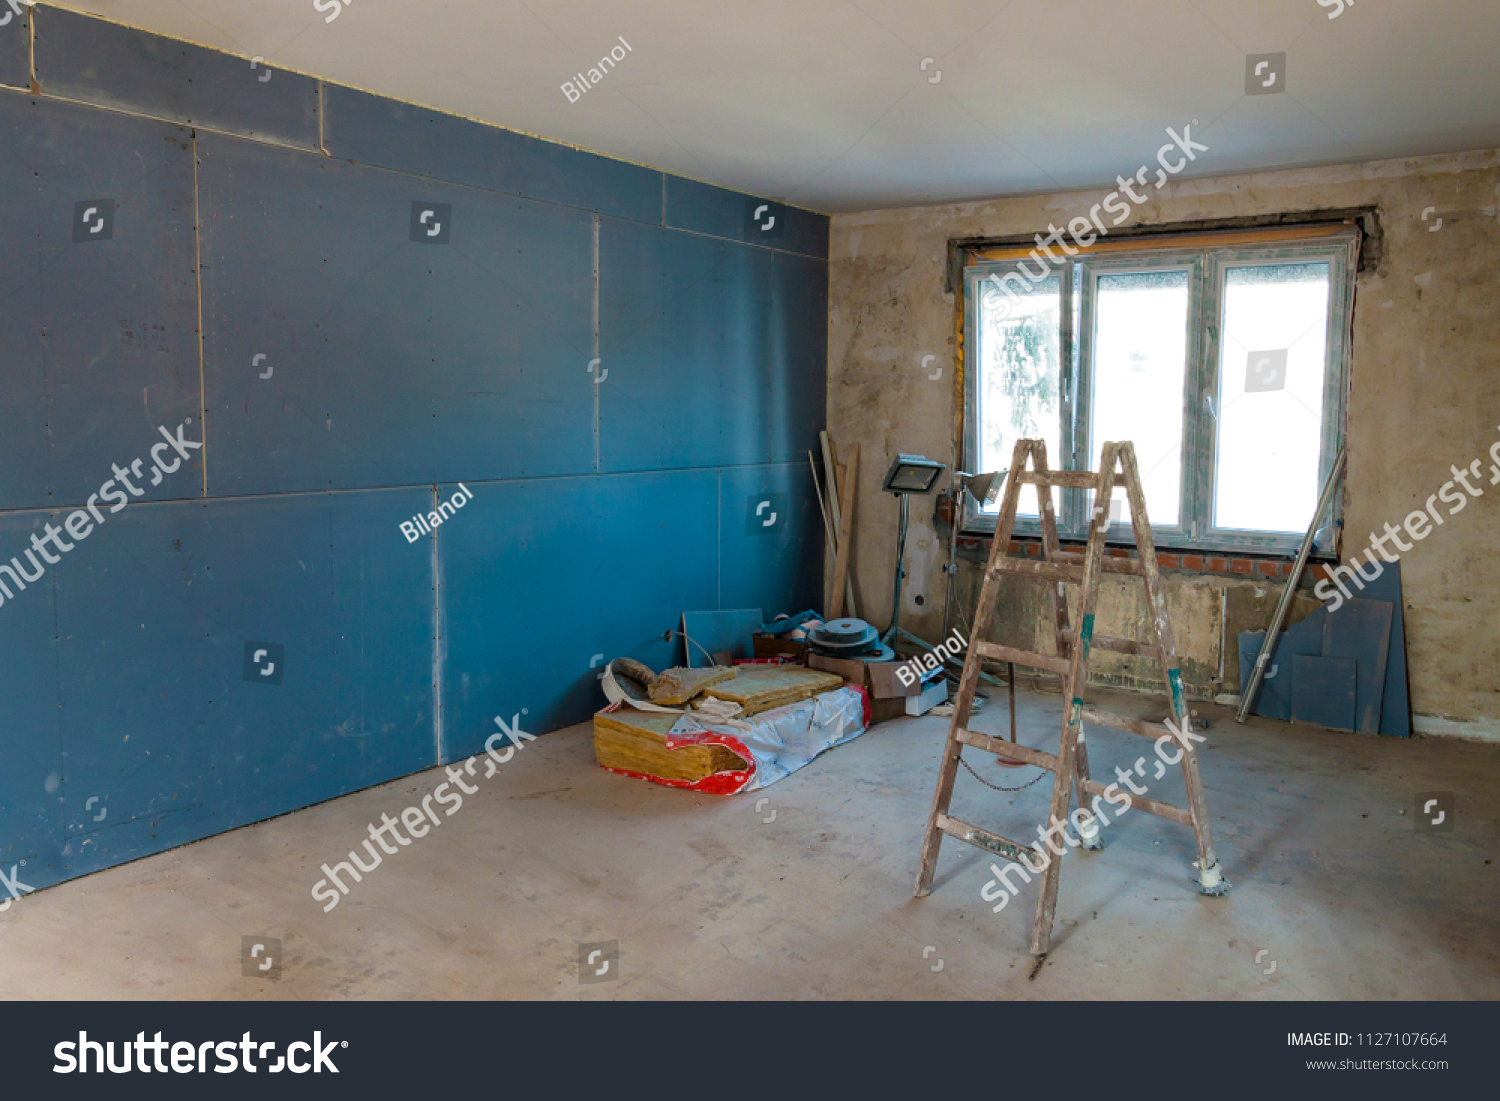 stock-photo-interior-of-a-house-under-construction-renovation-of-an-apartment-1127107664